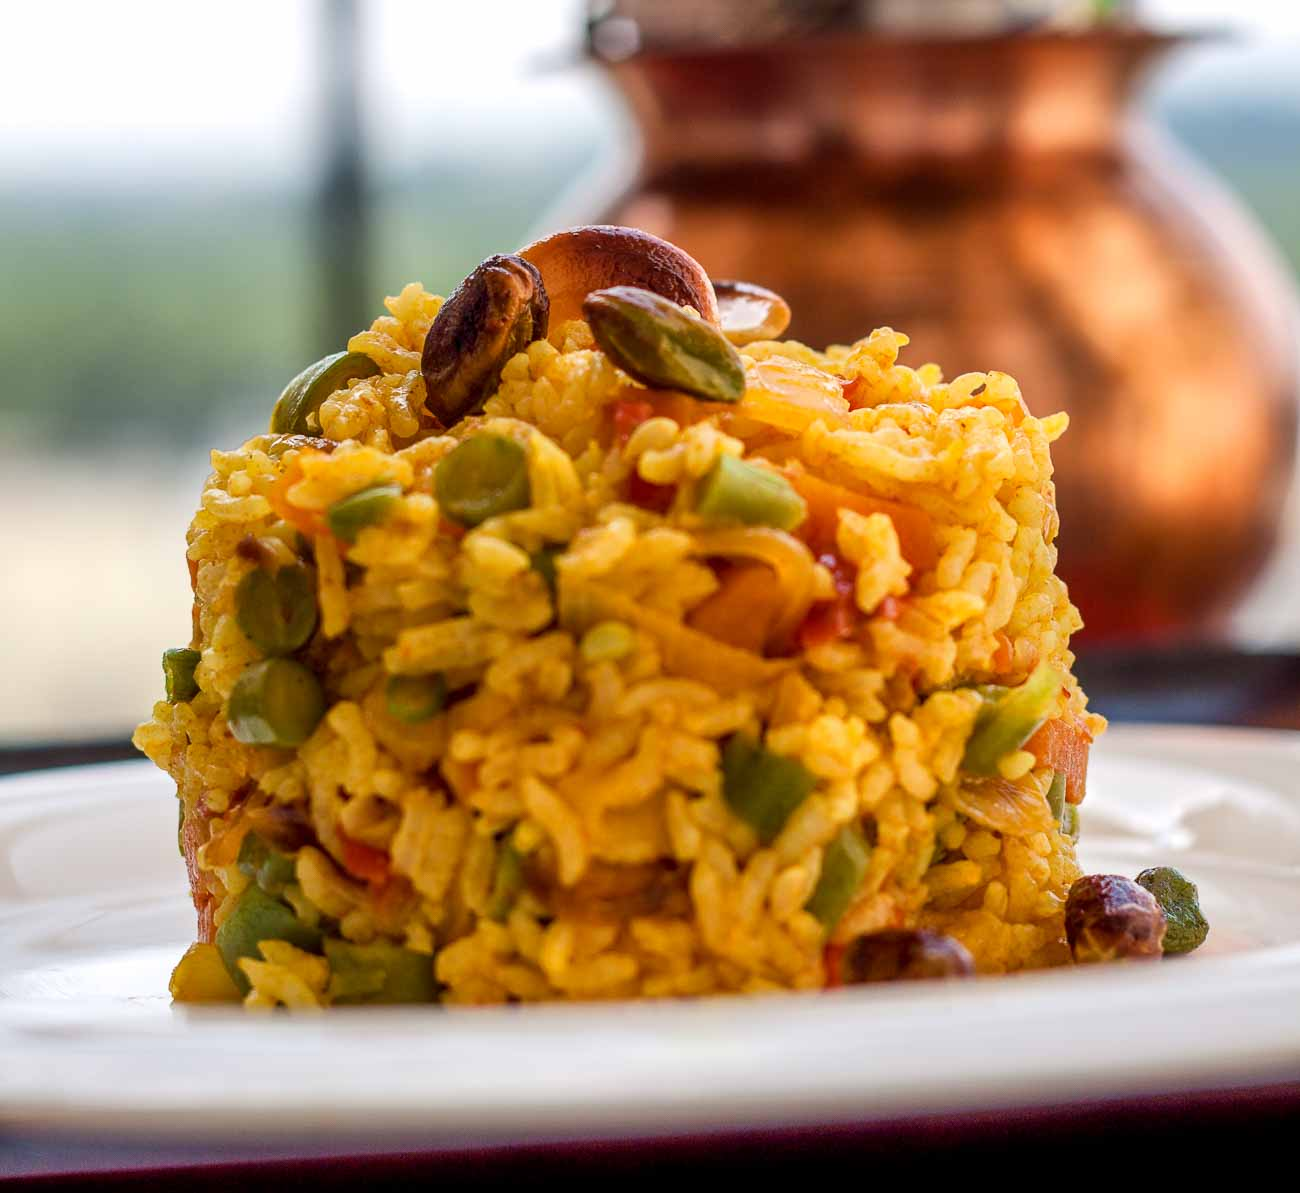 Gujarati Badshahi Pulao Recipe - A Rich Preparation Of Rice, Vegetables, Nuts And Spices